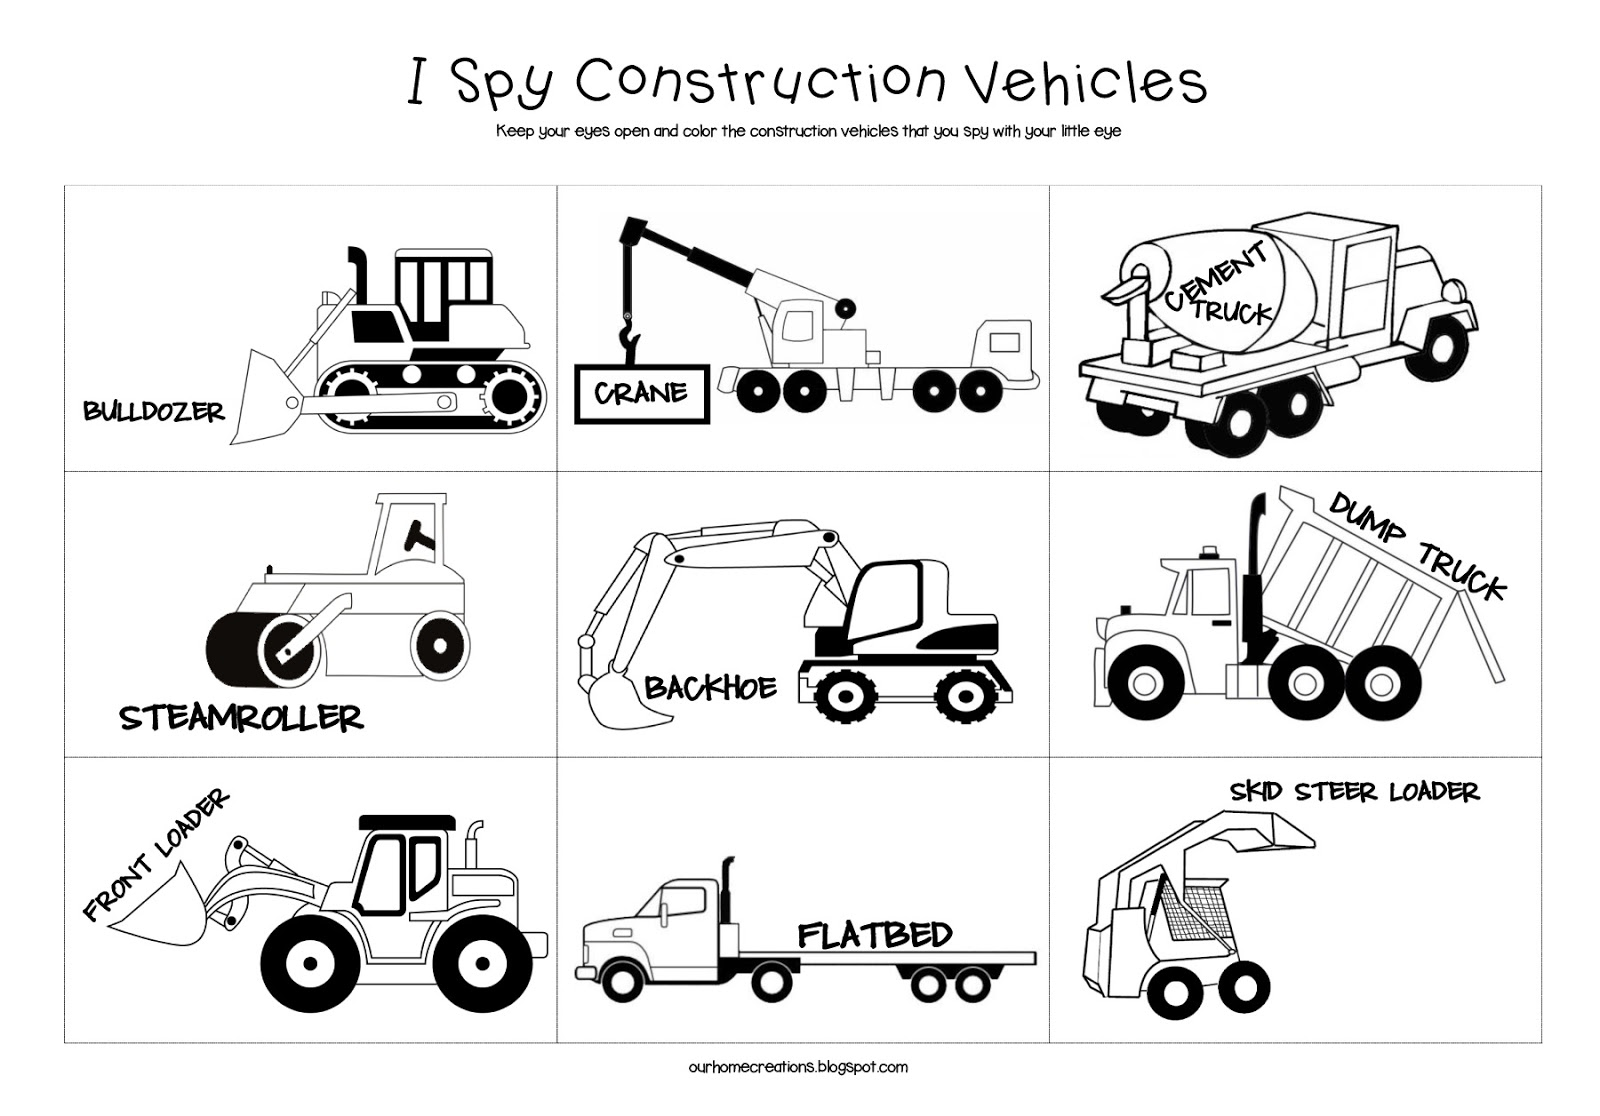 ourhomecreations: Free road trip game: I Spy Construction